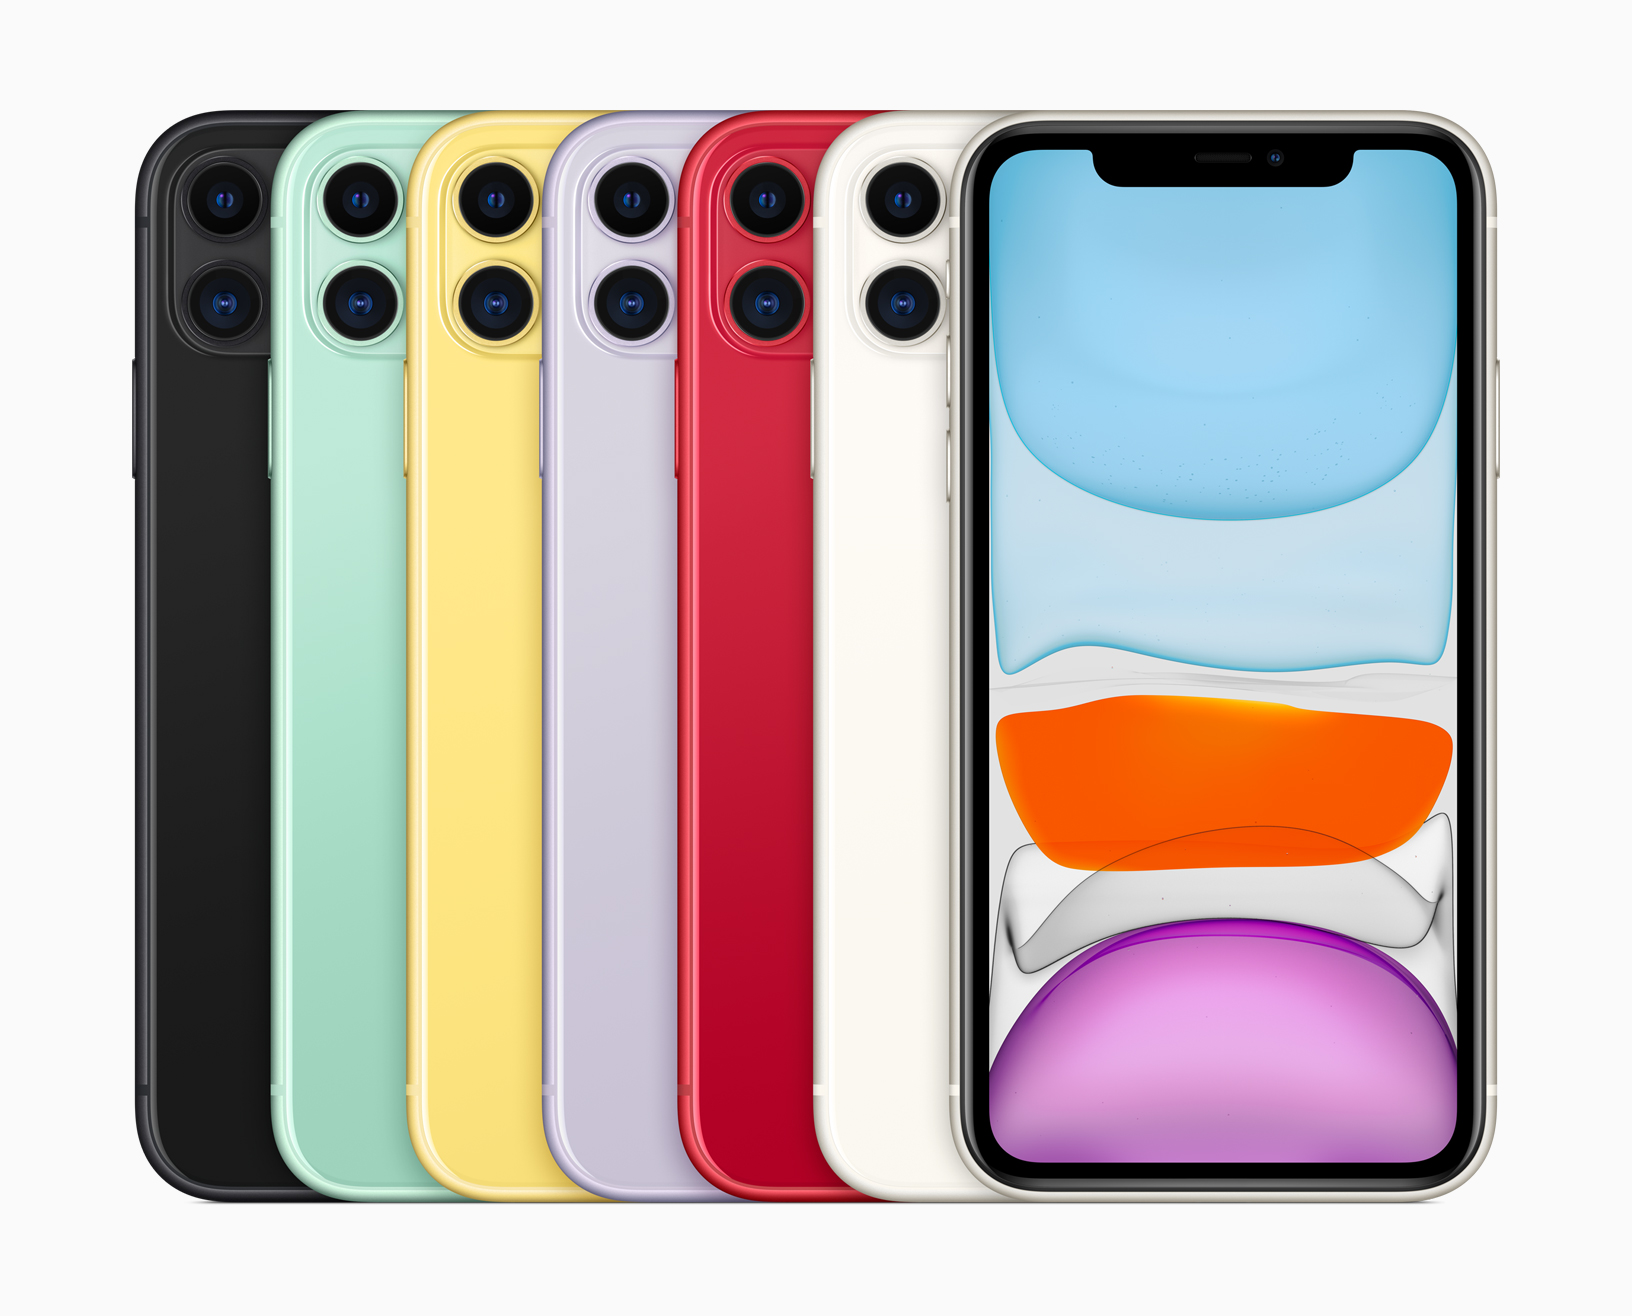 Apple Iphone 11 Family Lineup 091019